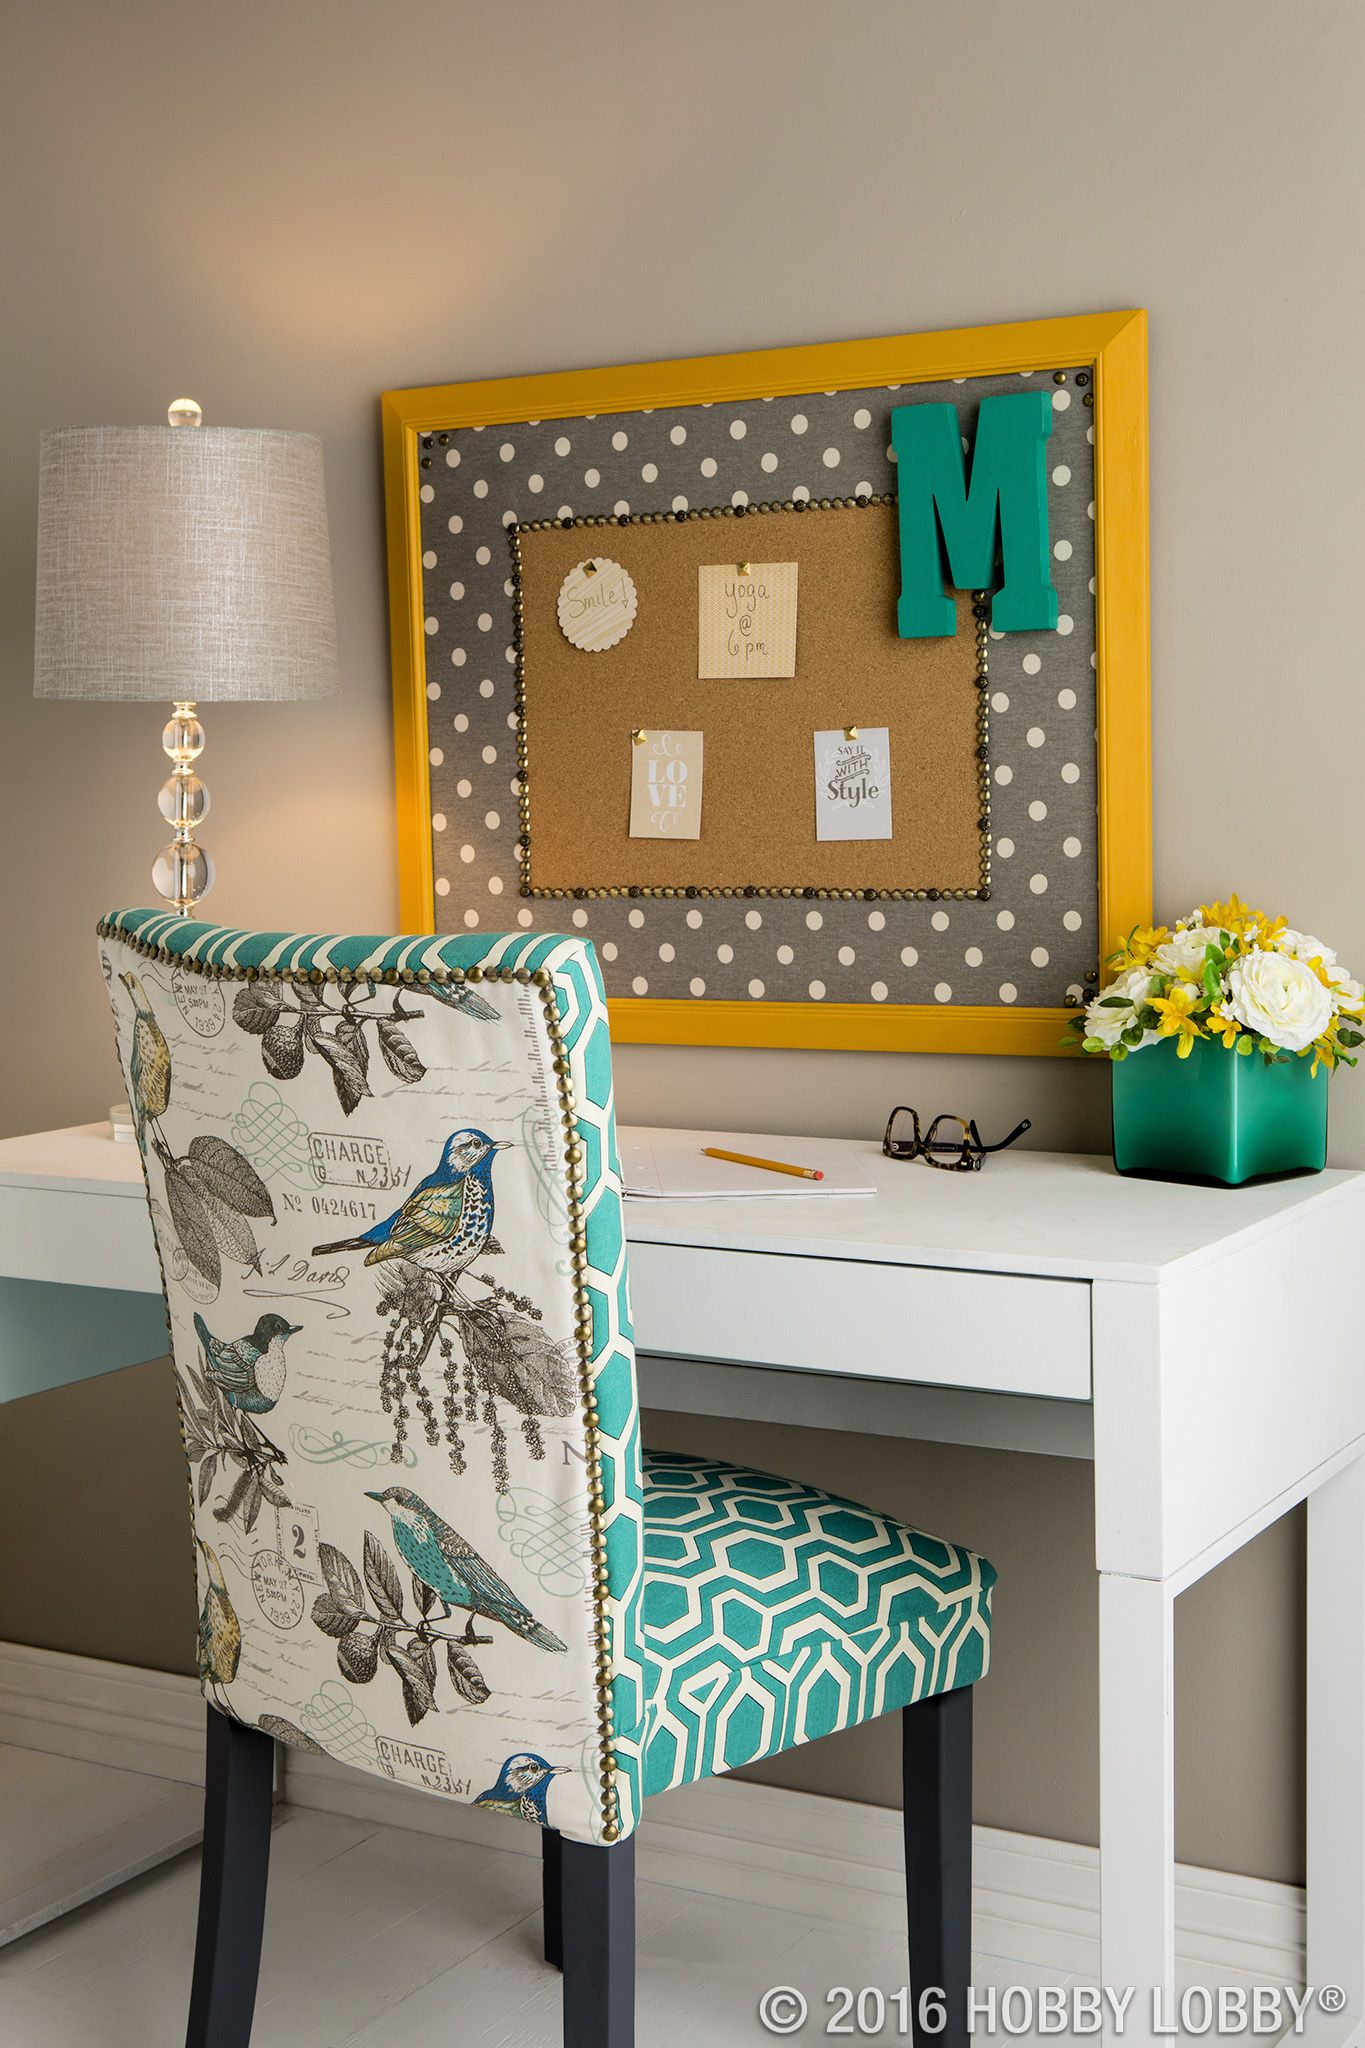 Trade An Ultra Traditional Look For Upbeat Chic Decor With